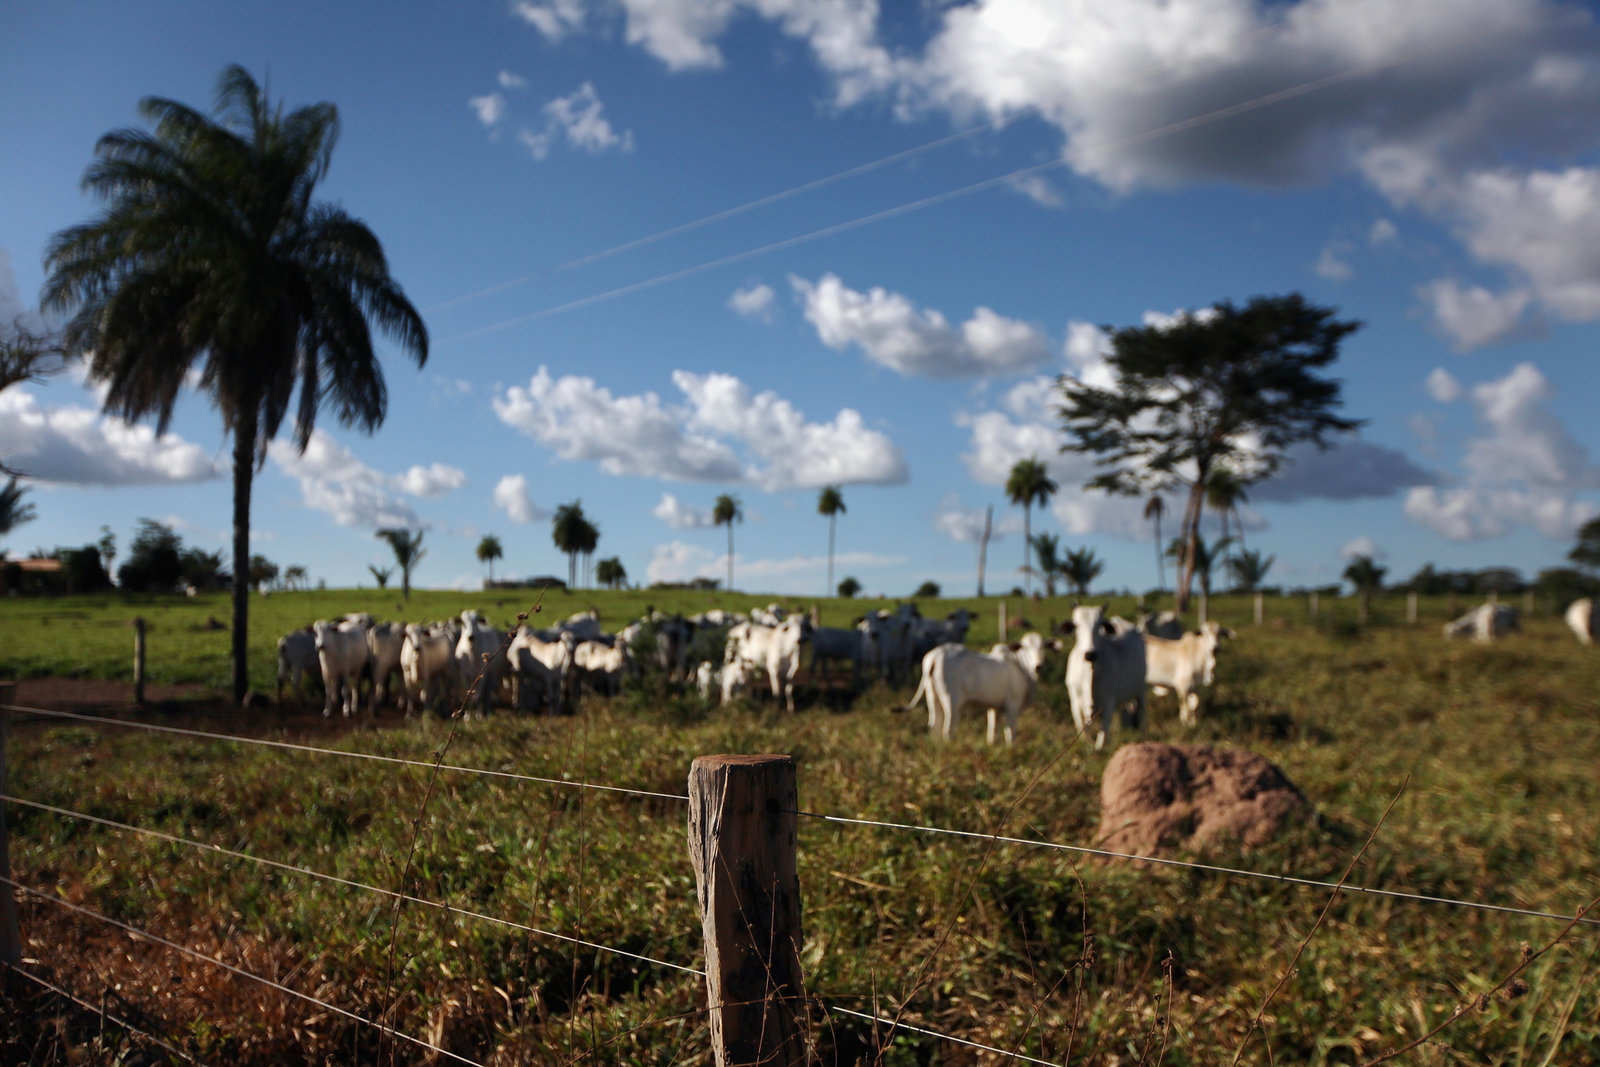 Much of the deforestation in Brazil has been driven by beef production